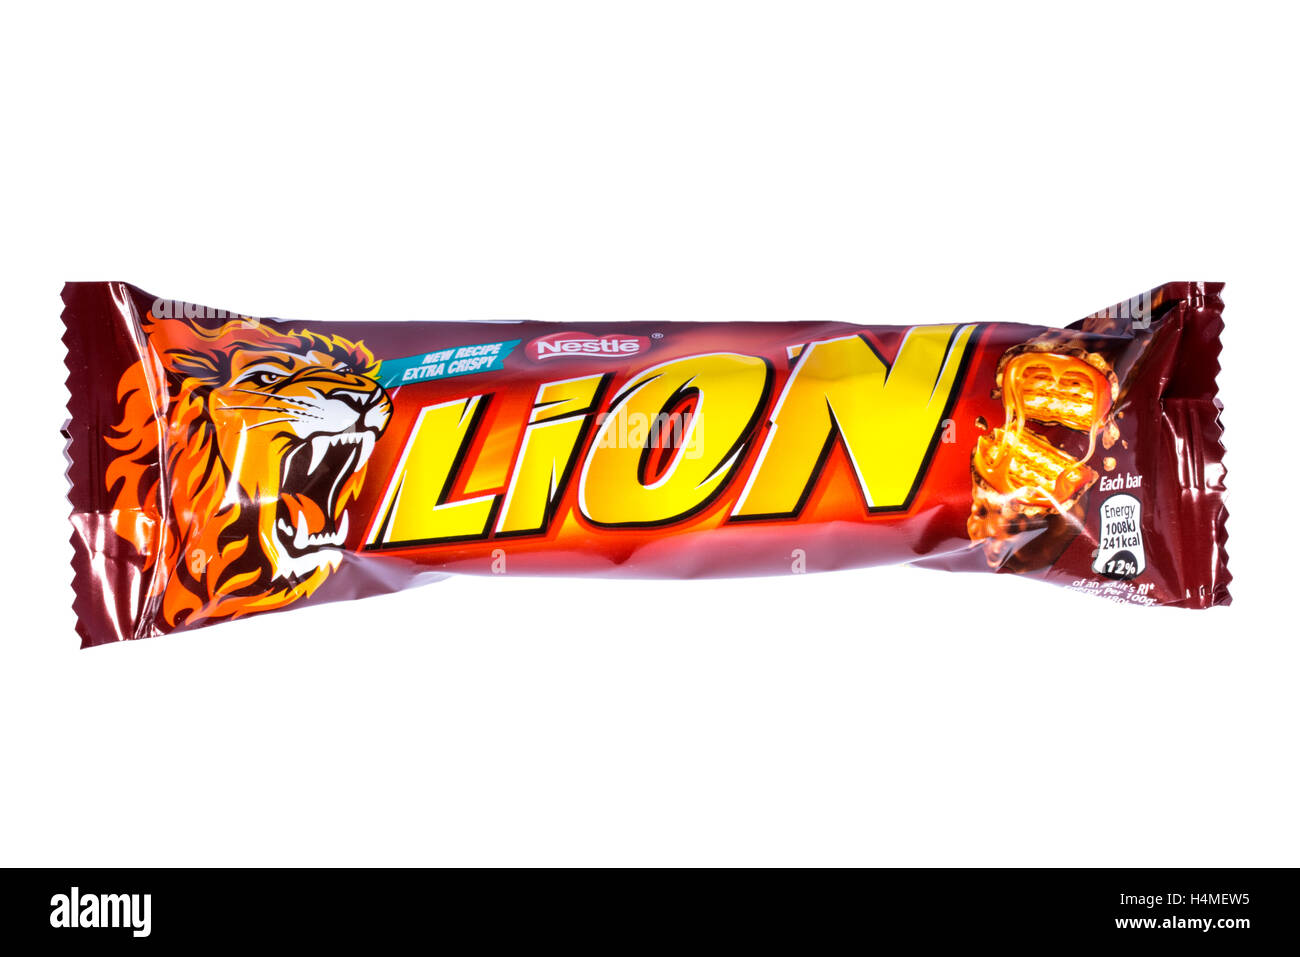 LONDON, UK - OCTOBER 13TH 2016: An unopened Lion chocolate bar manufactured by Nestle. - Stock Image